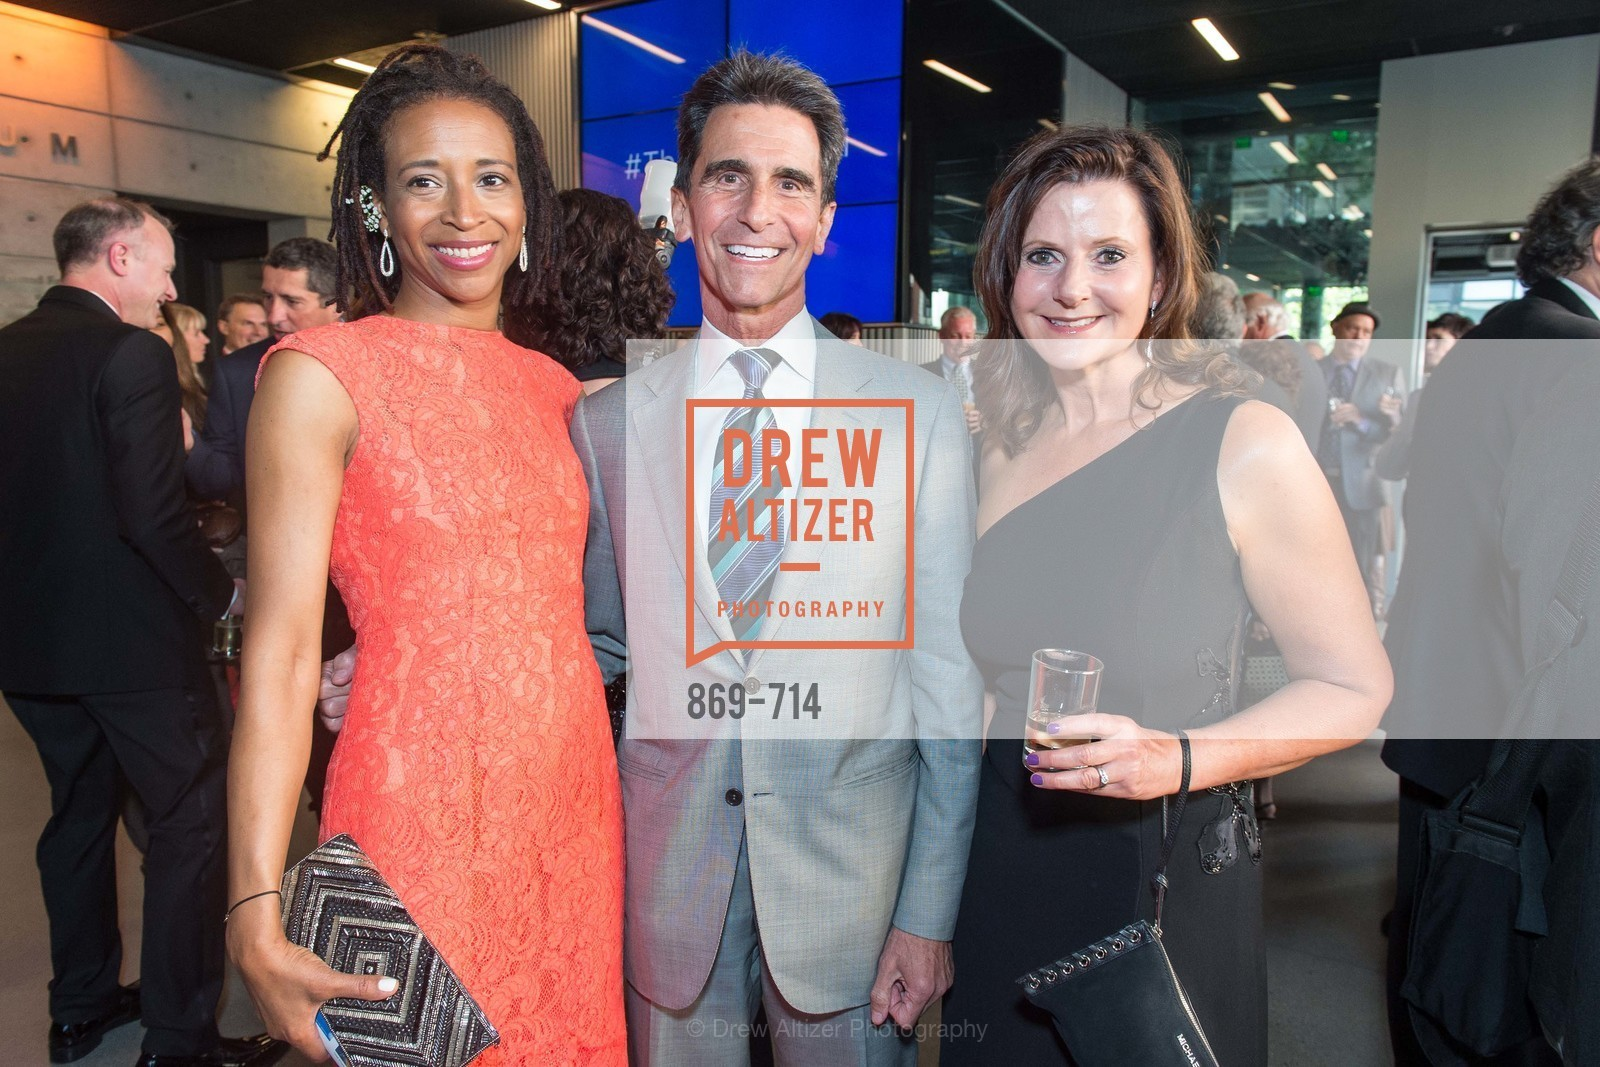 Katiti Crawford, Mark Leno, Diane Mailey, SFJAZZ Gala 2015 Honors Joni Mitchell with Lifetime Achievement Award, US, May 9th, 2015,Drew Altizer, Drew Altizer Photography, full-service agency, private events, San Francisco photographer, photographer california